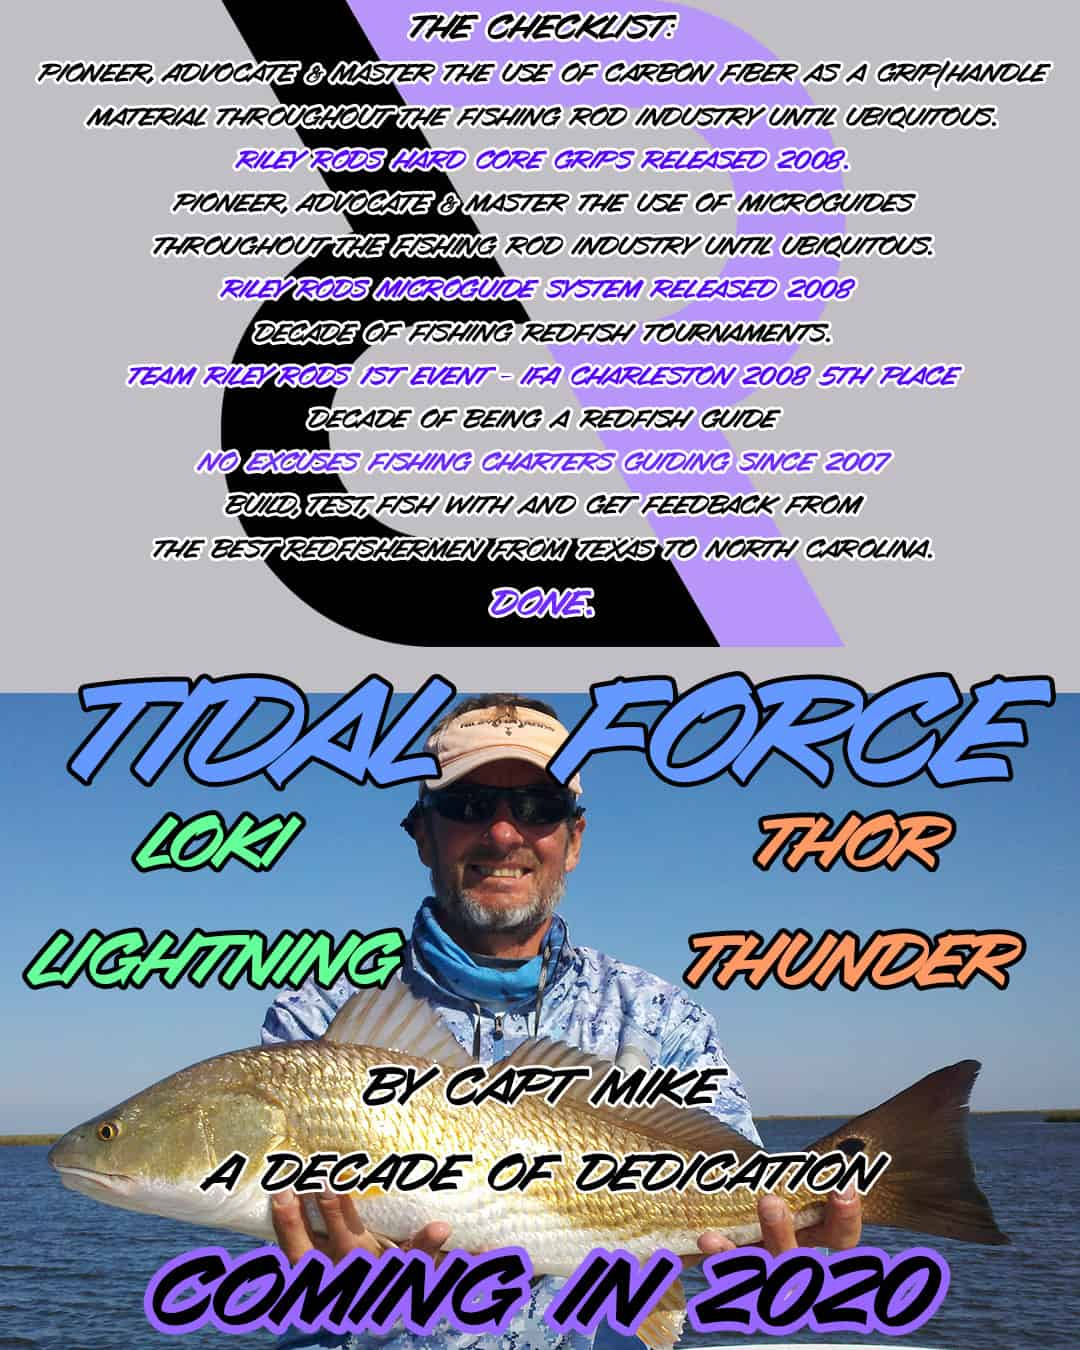 Capt Mike Fishing - NX Fishing Charters - Riley Rods - Team North Fork Composites 17